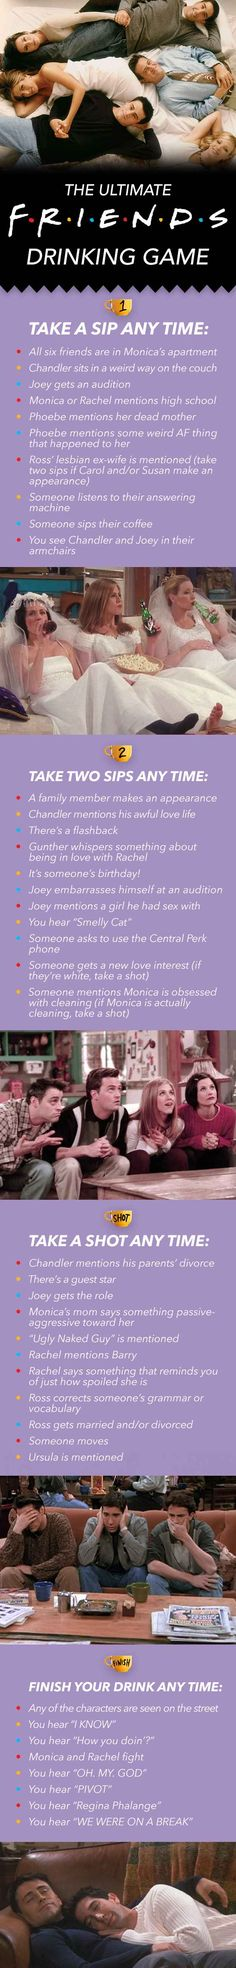 "The Ultimate ""Friends"" Drinking Game-also known as how to give yourself alcohol poisoning while watching an afternoon of reruns!"